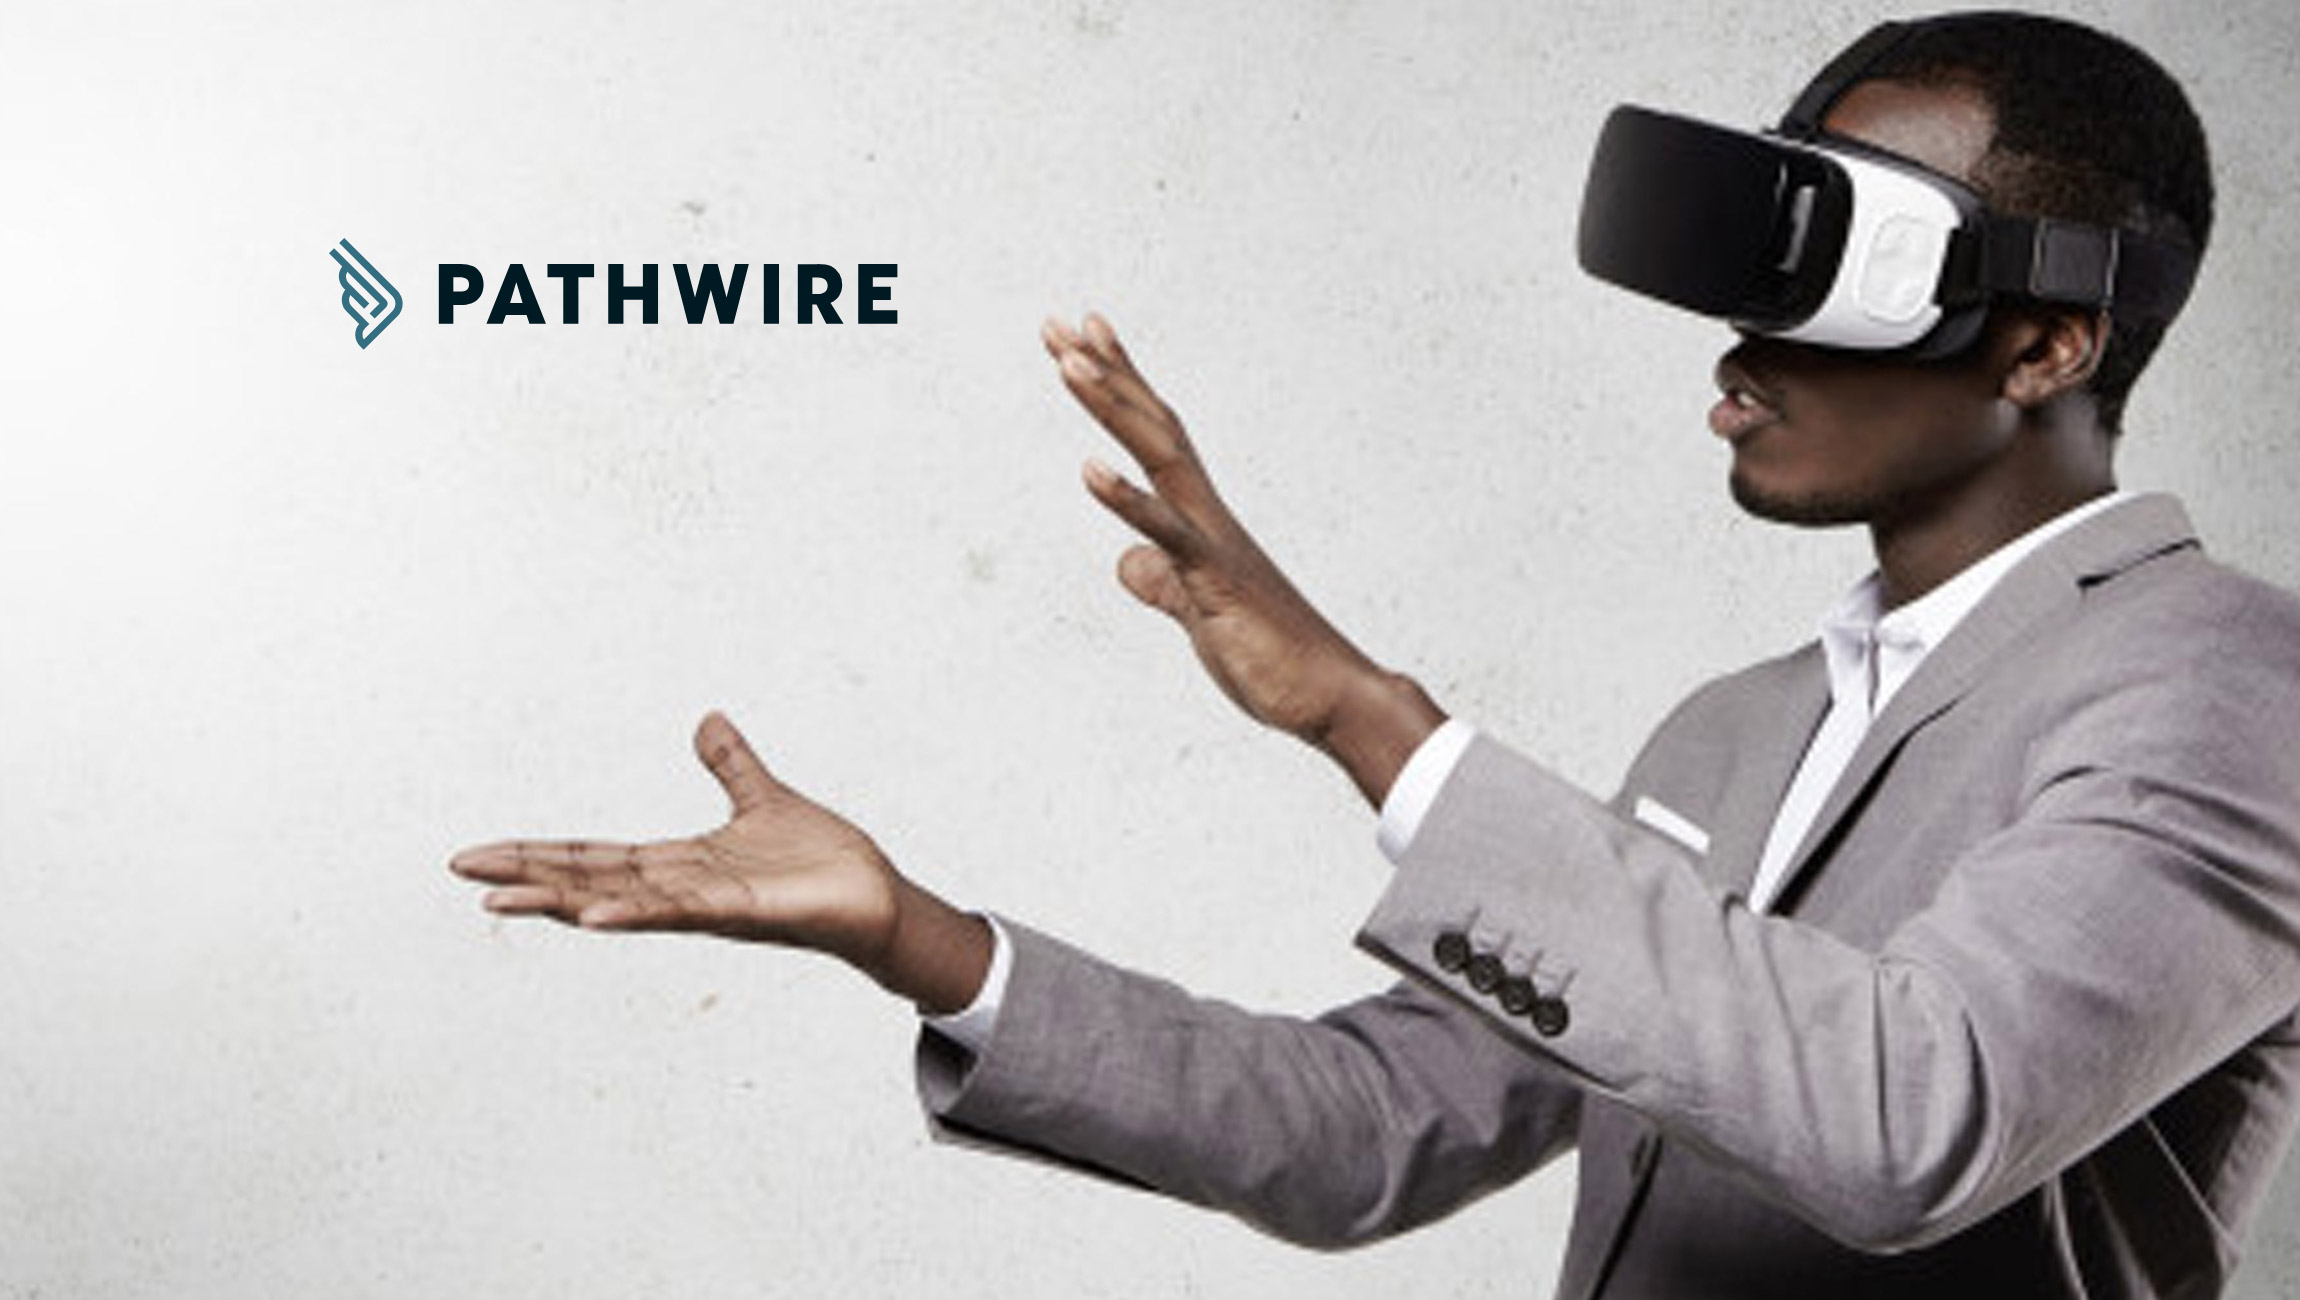 Pathwire Announces Emailstock '21 to be Held May 18-20 on a Global Virtual Stage